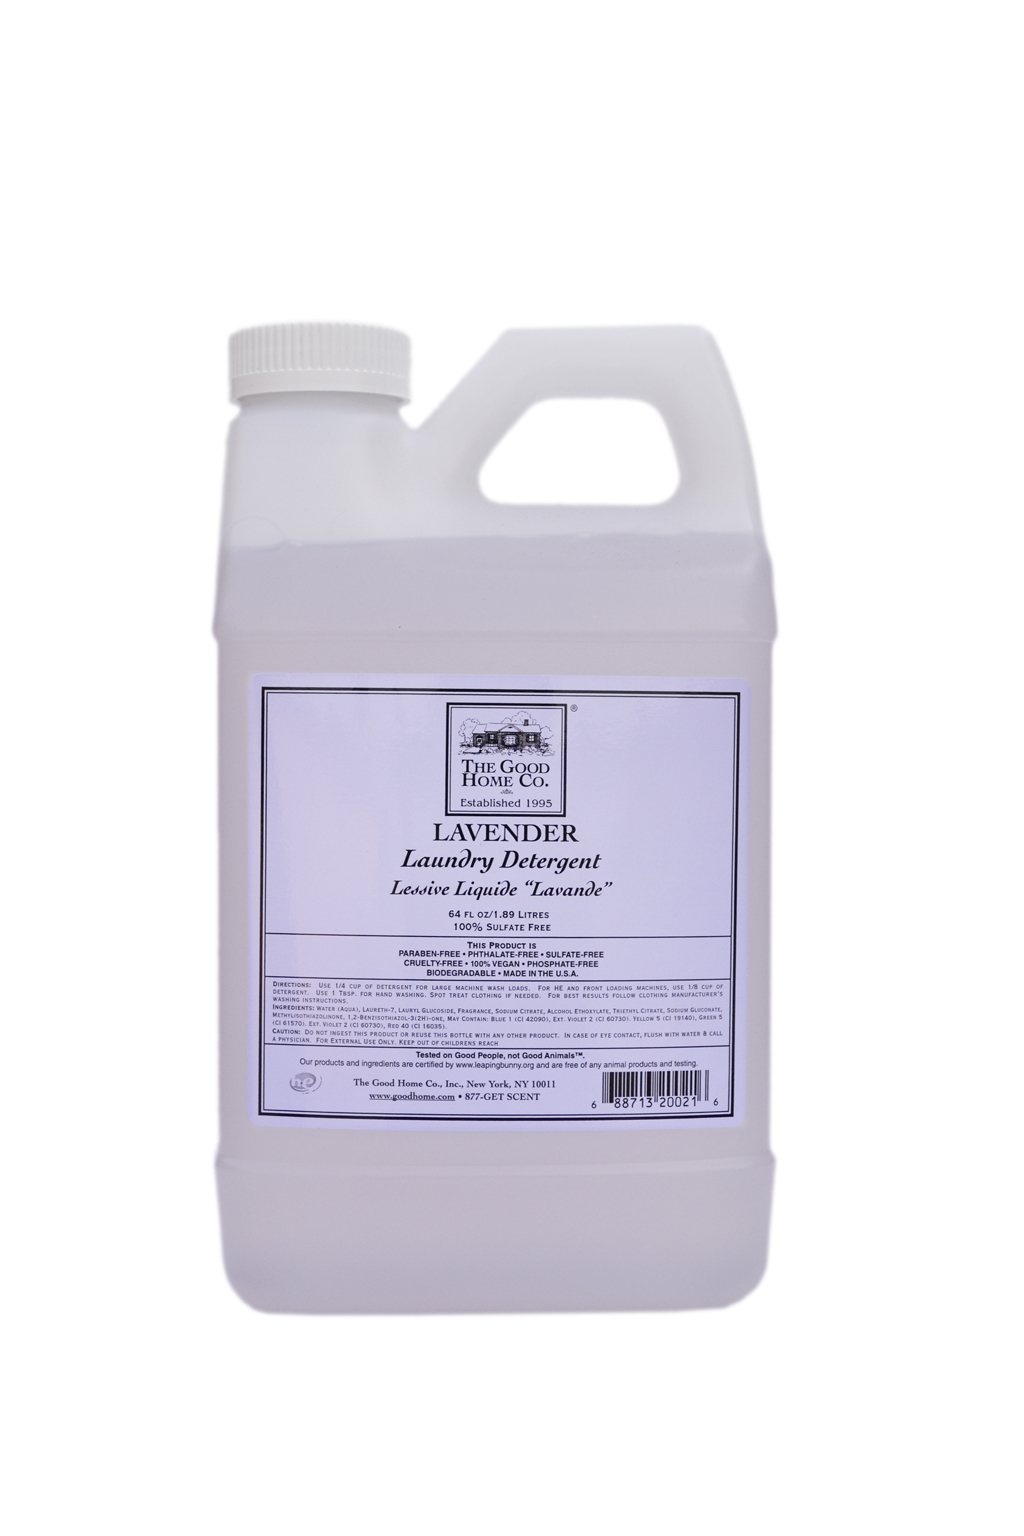 Lavender Laundry Detergent - made with natural lavender